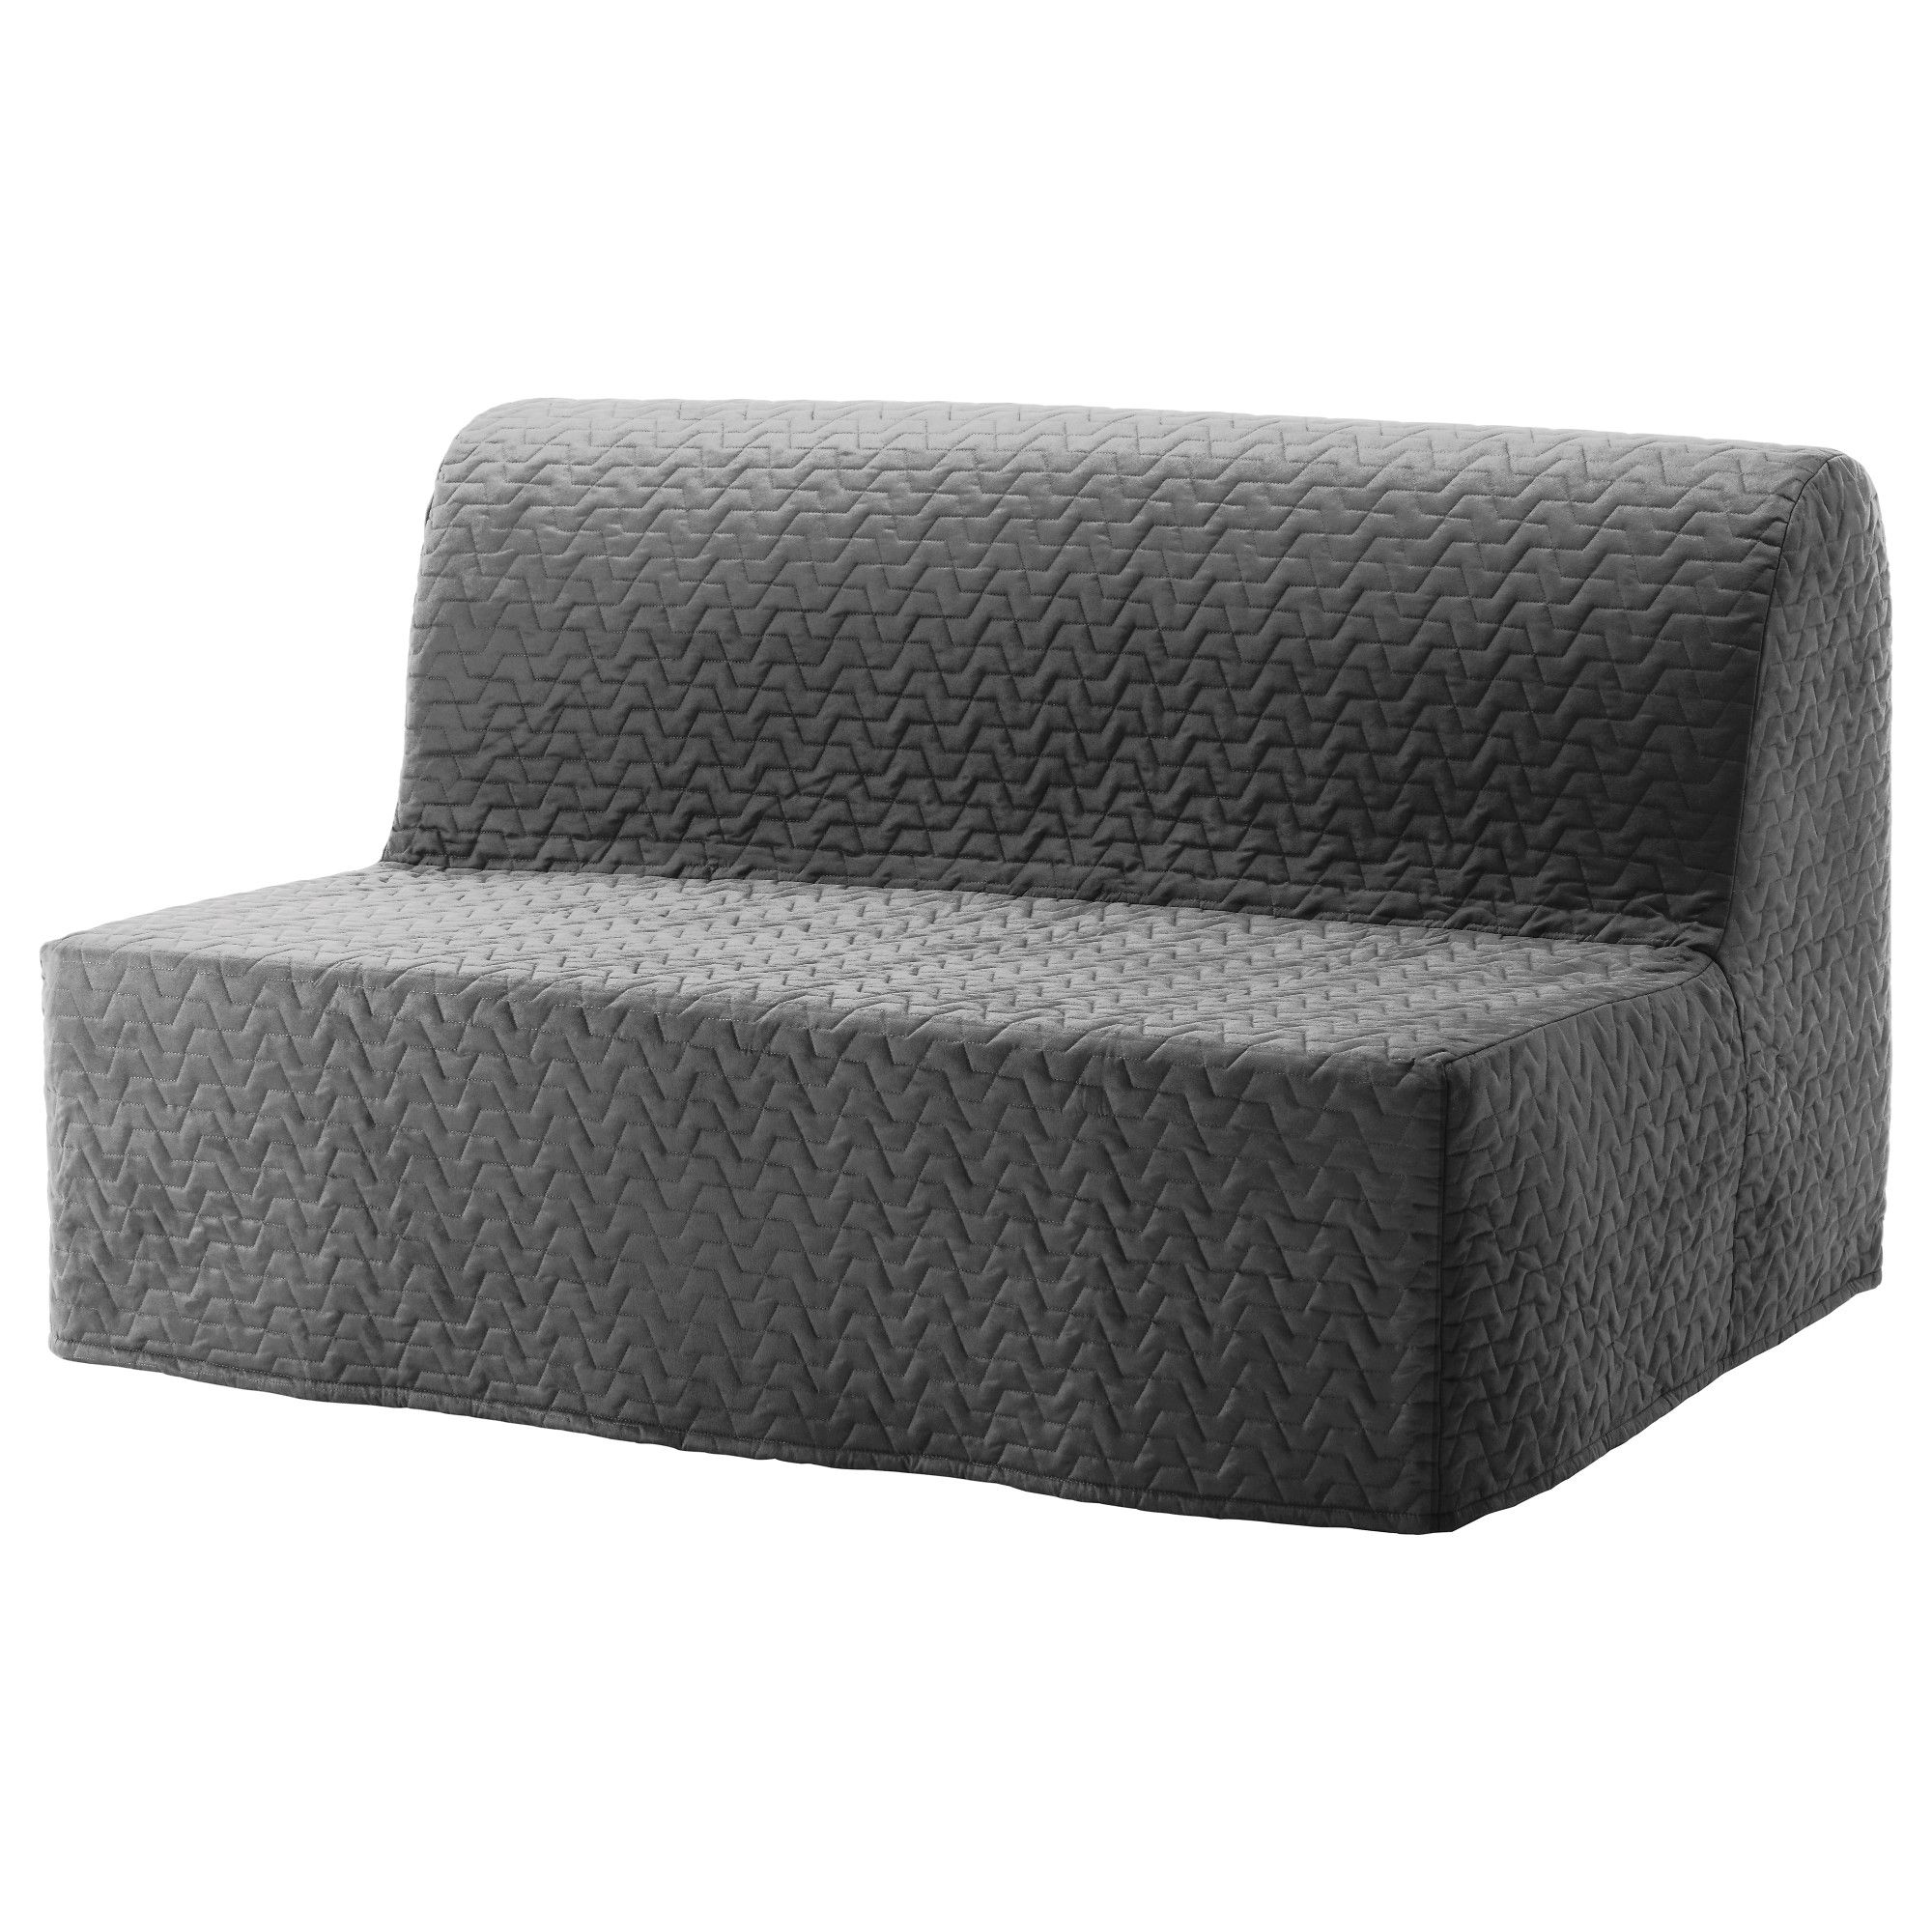 lycksele two seat sofa bed cover vallarum grey grey art and gray